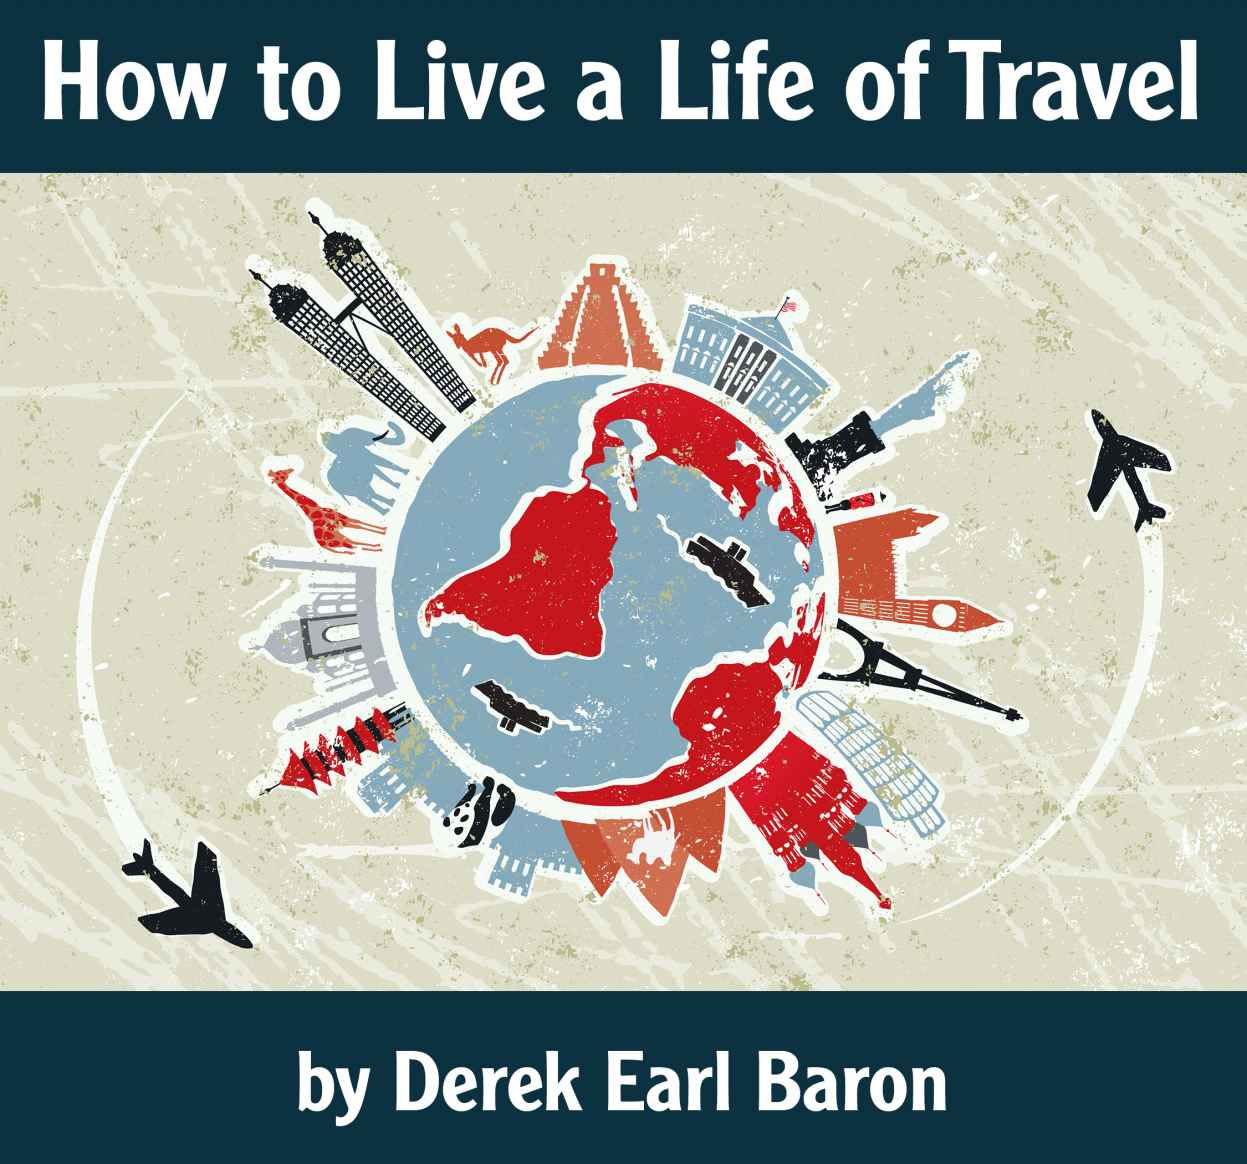 How to Live a Life of Travel by Derek Earl Baron